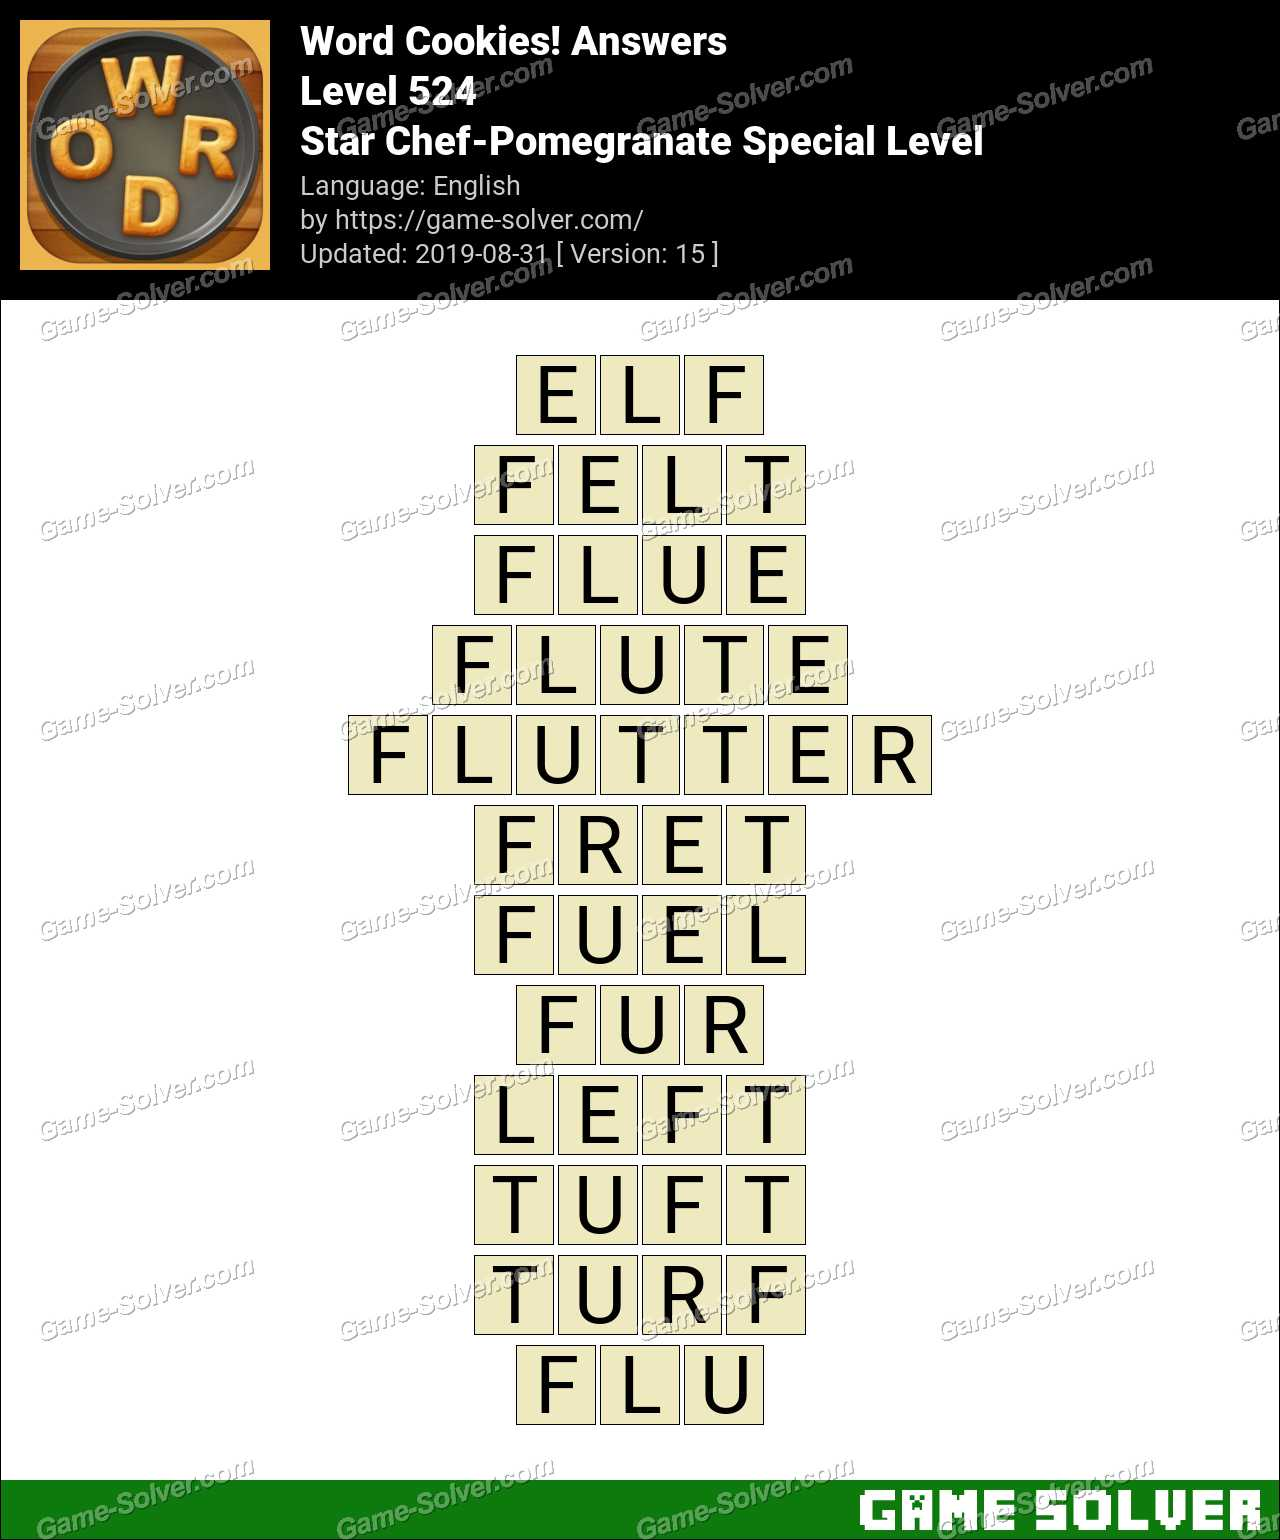 Word Cookies Star Chef-Pomegranate Special Level Answers